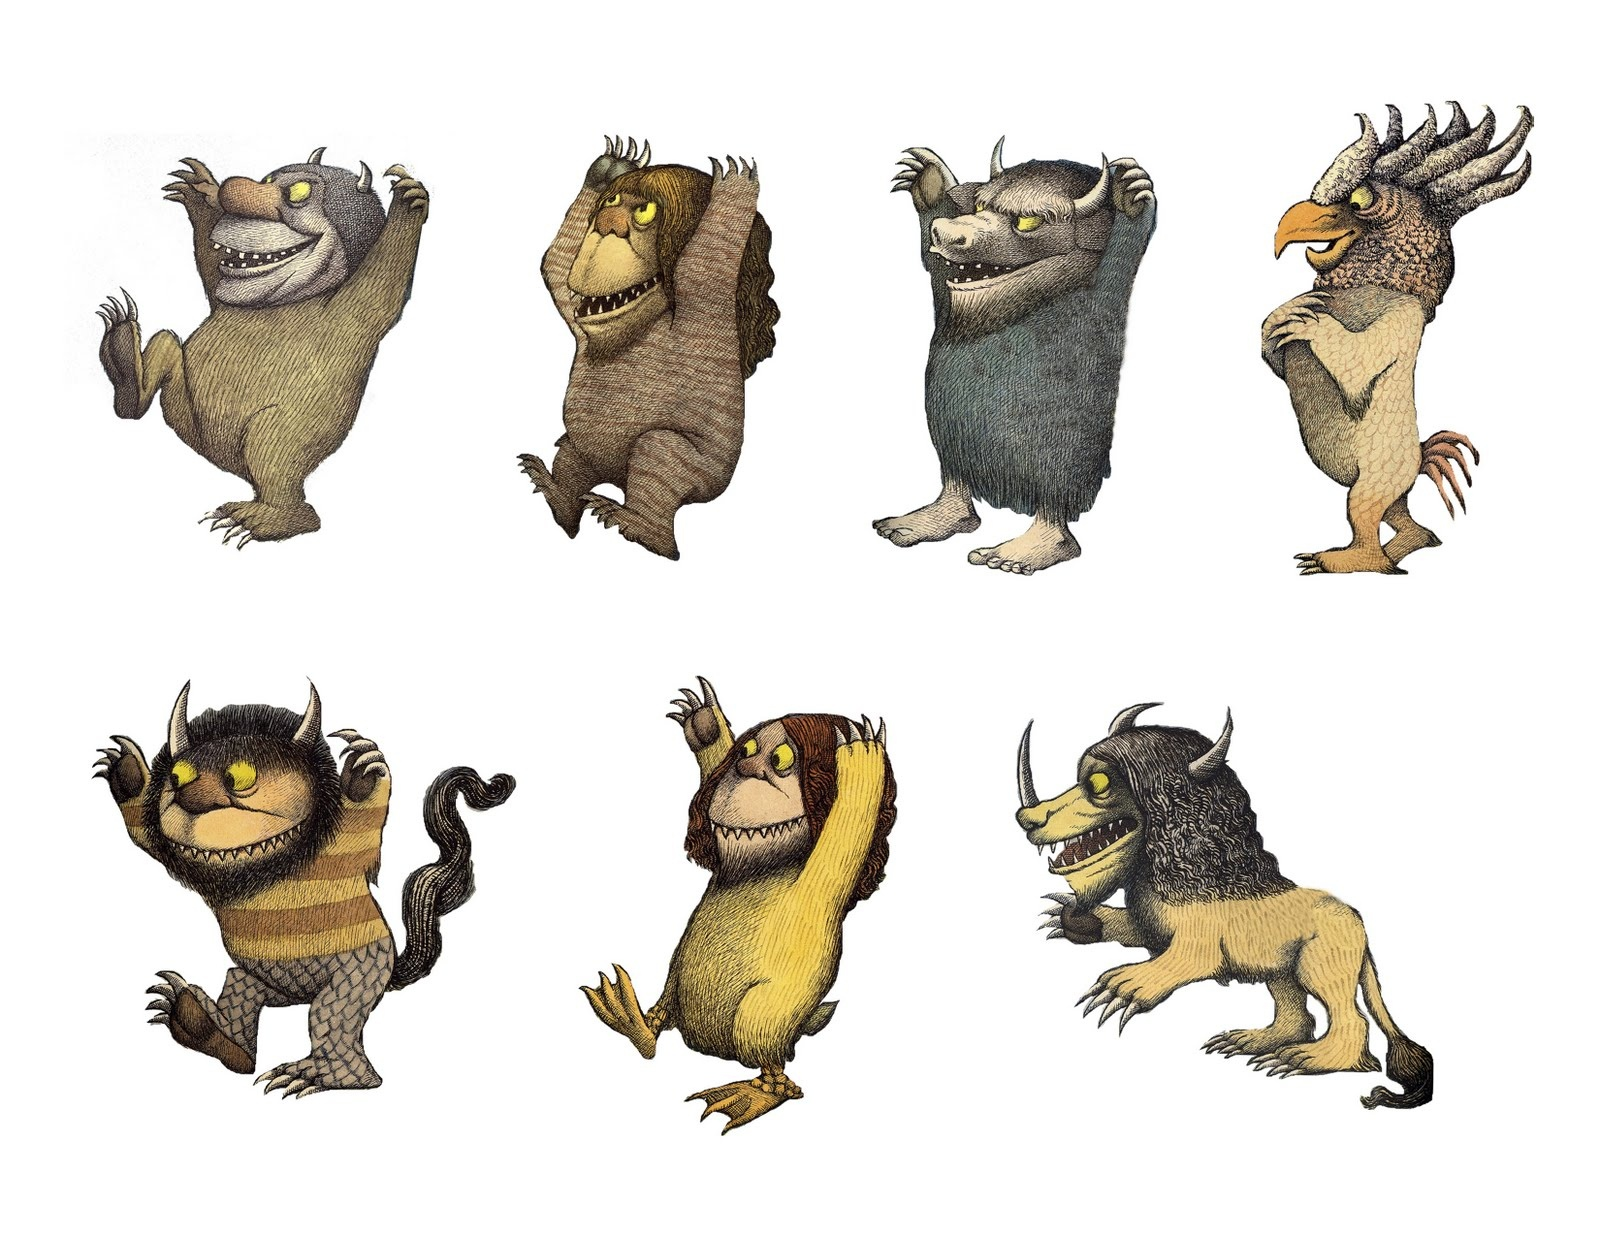 Where The Wild Things Are Printables For Free (75+ Images In - Where The Wild Things Are Printables For Free